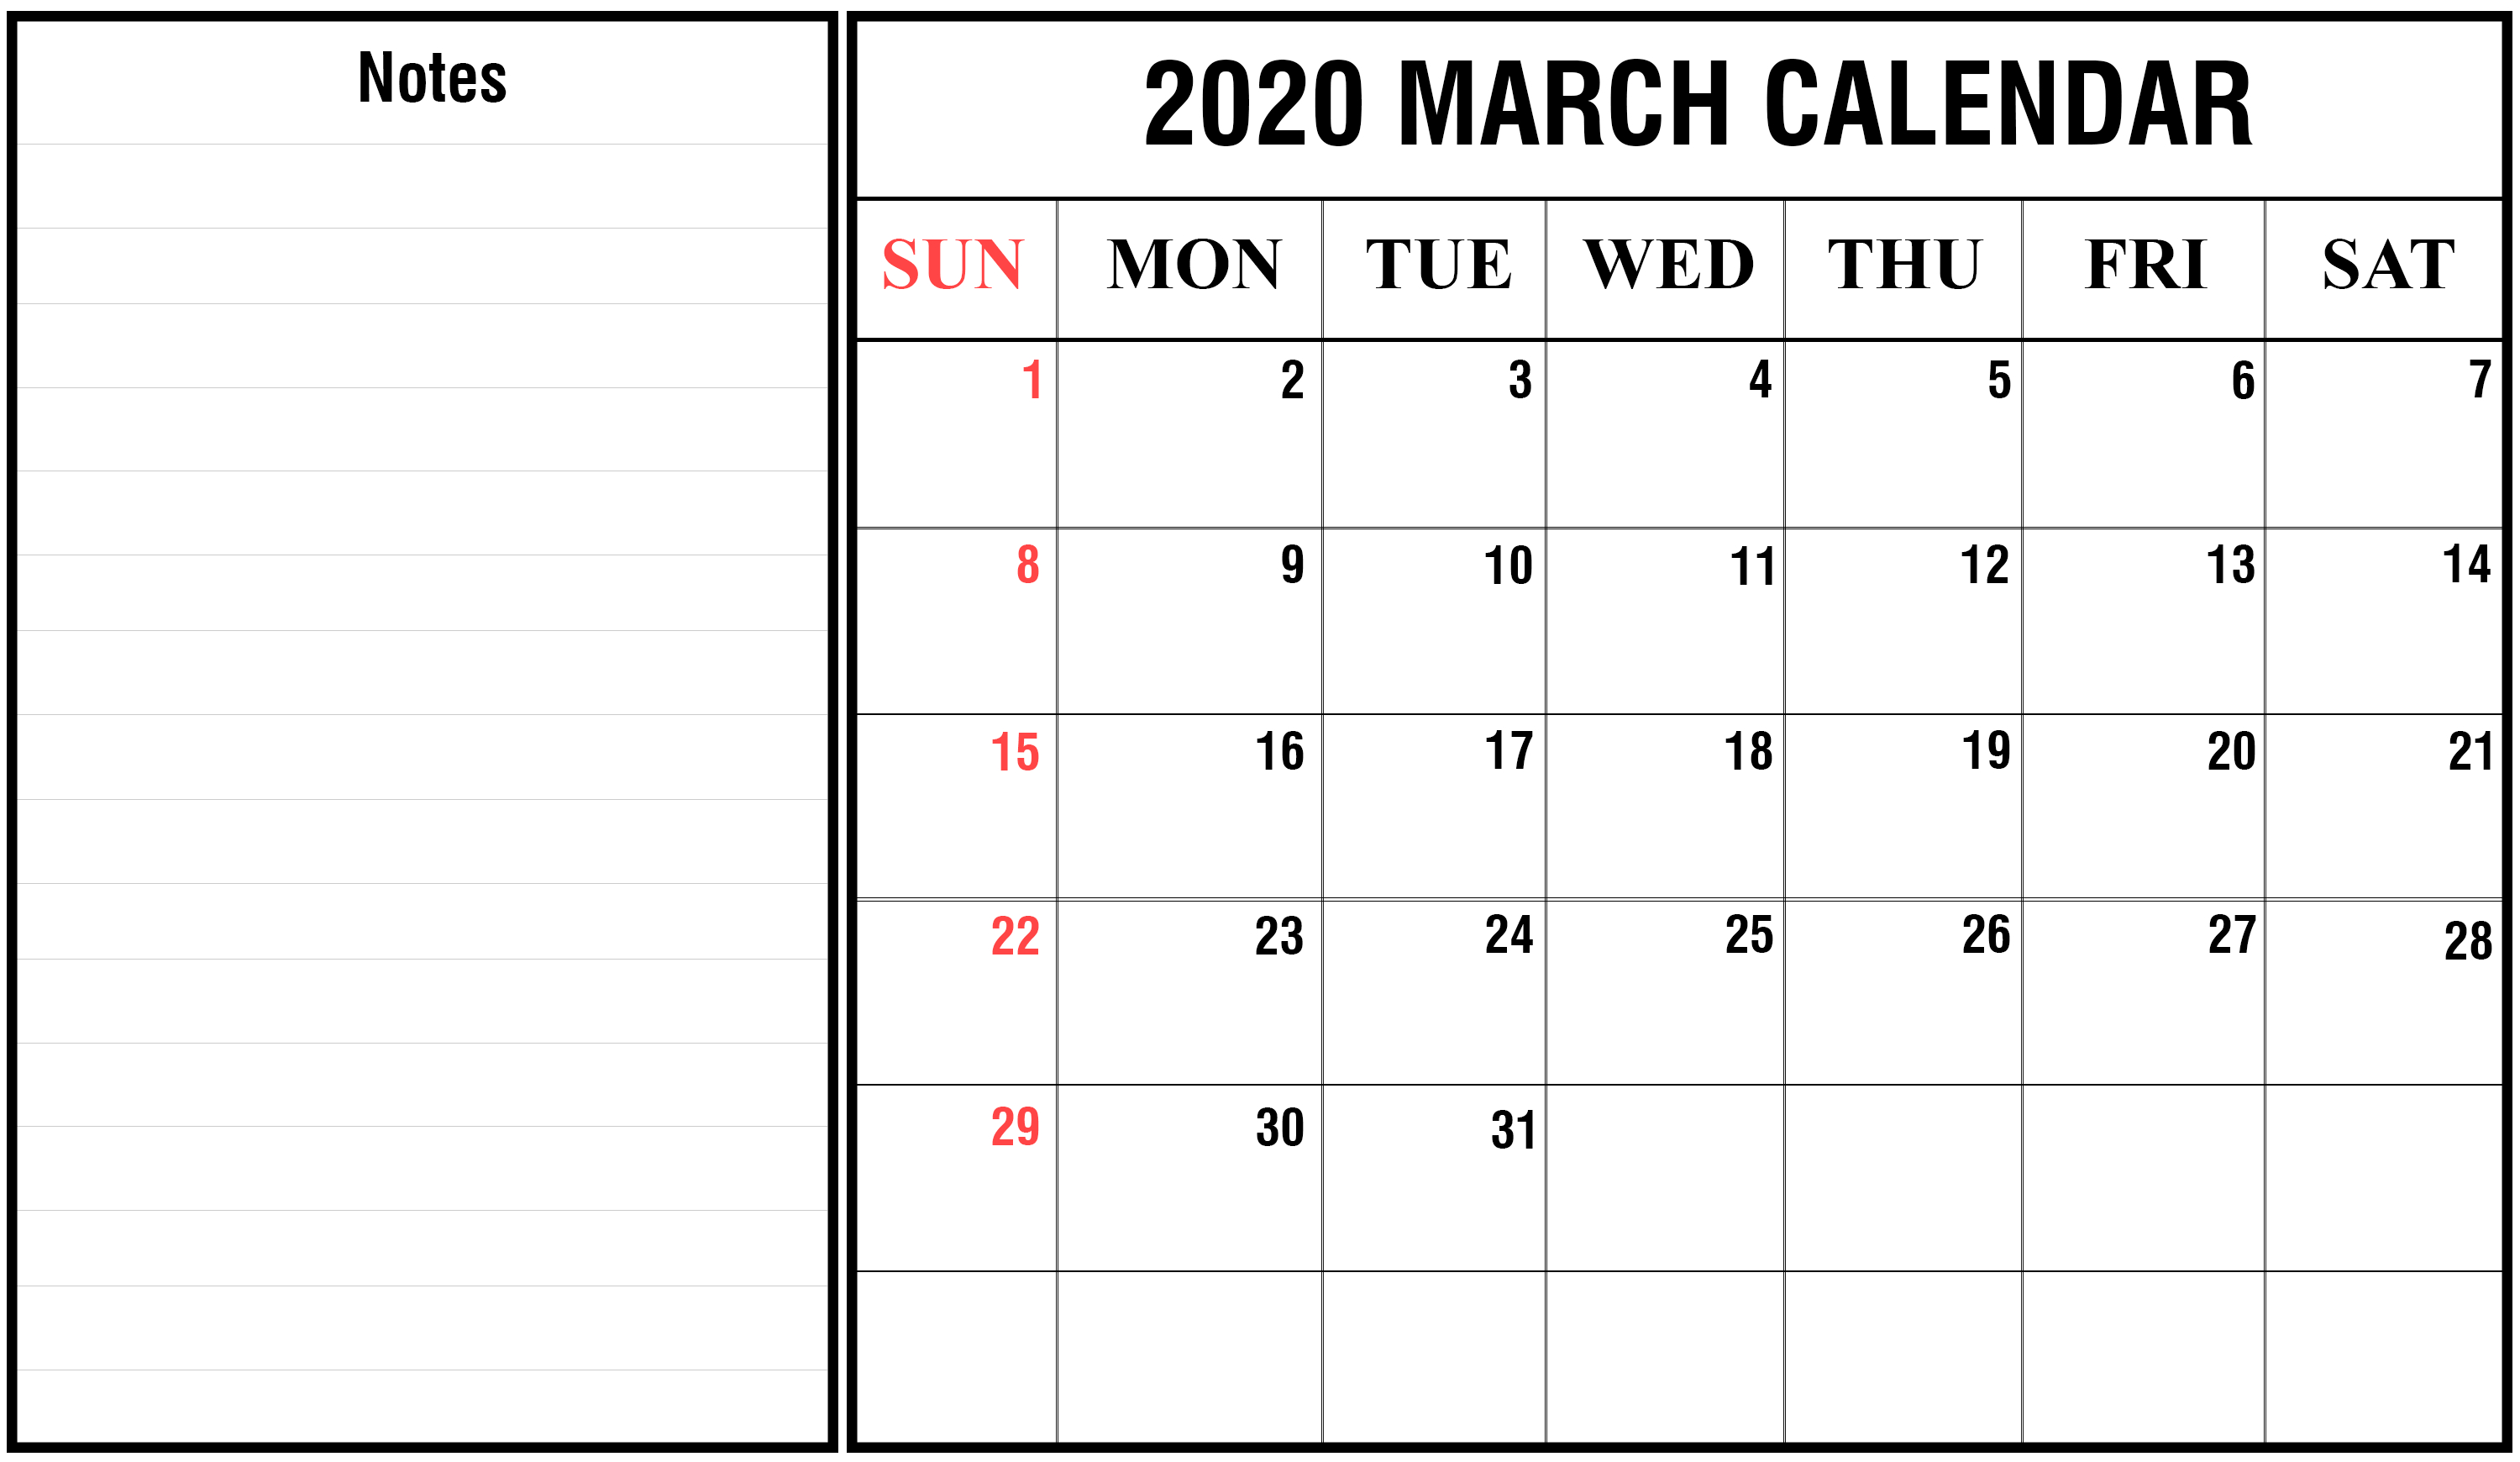 Free Printable March Calendar 2020 Blank Template Editable for 2020 Calendars That You Can Edit